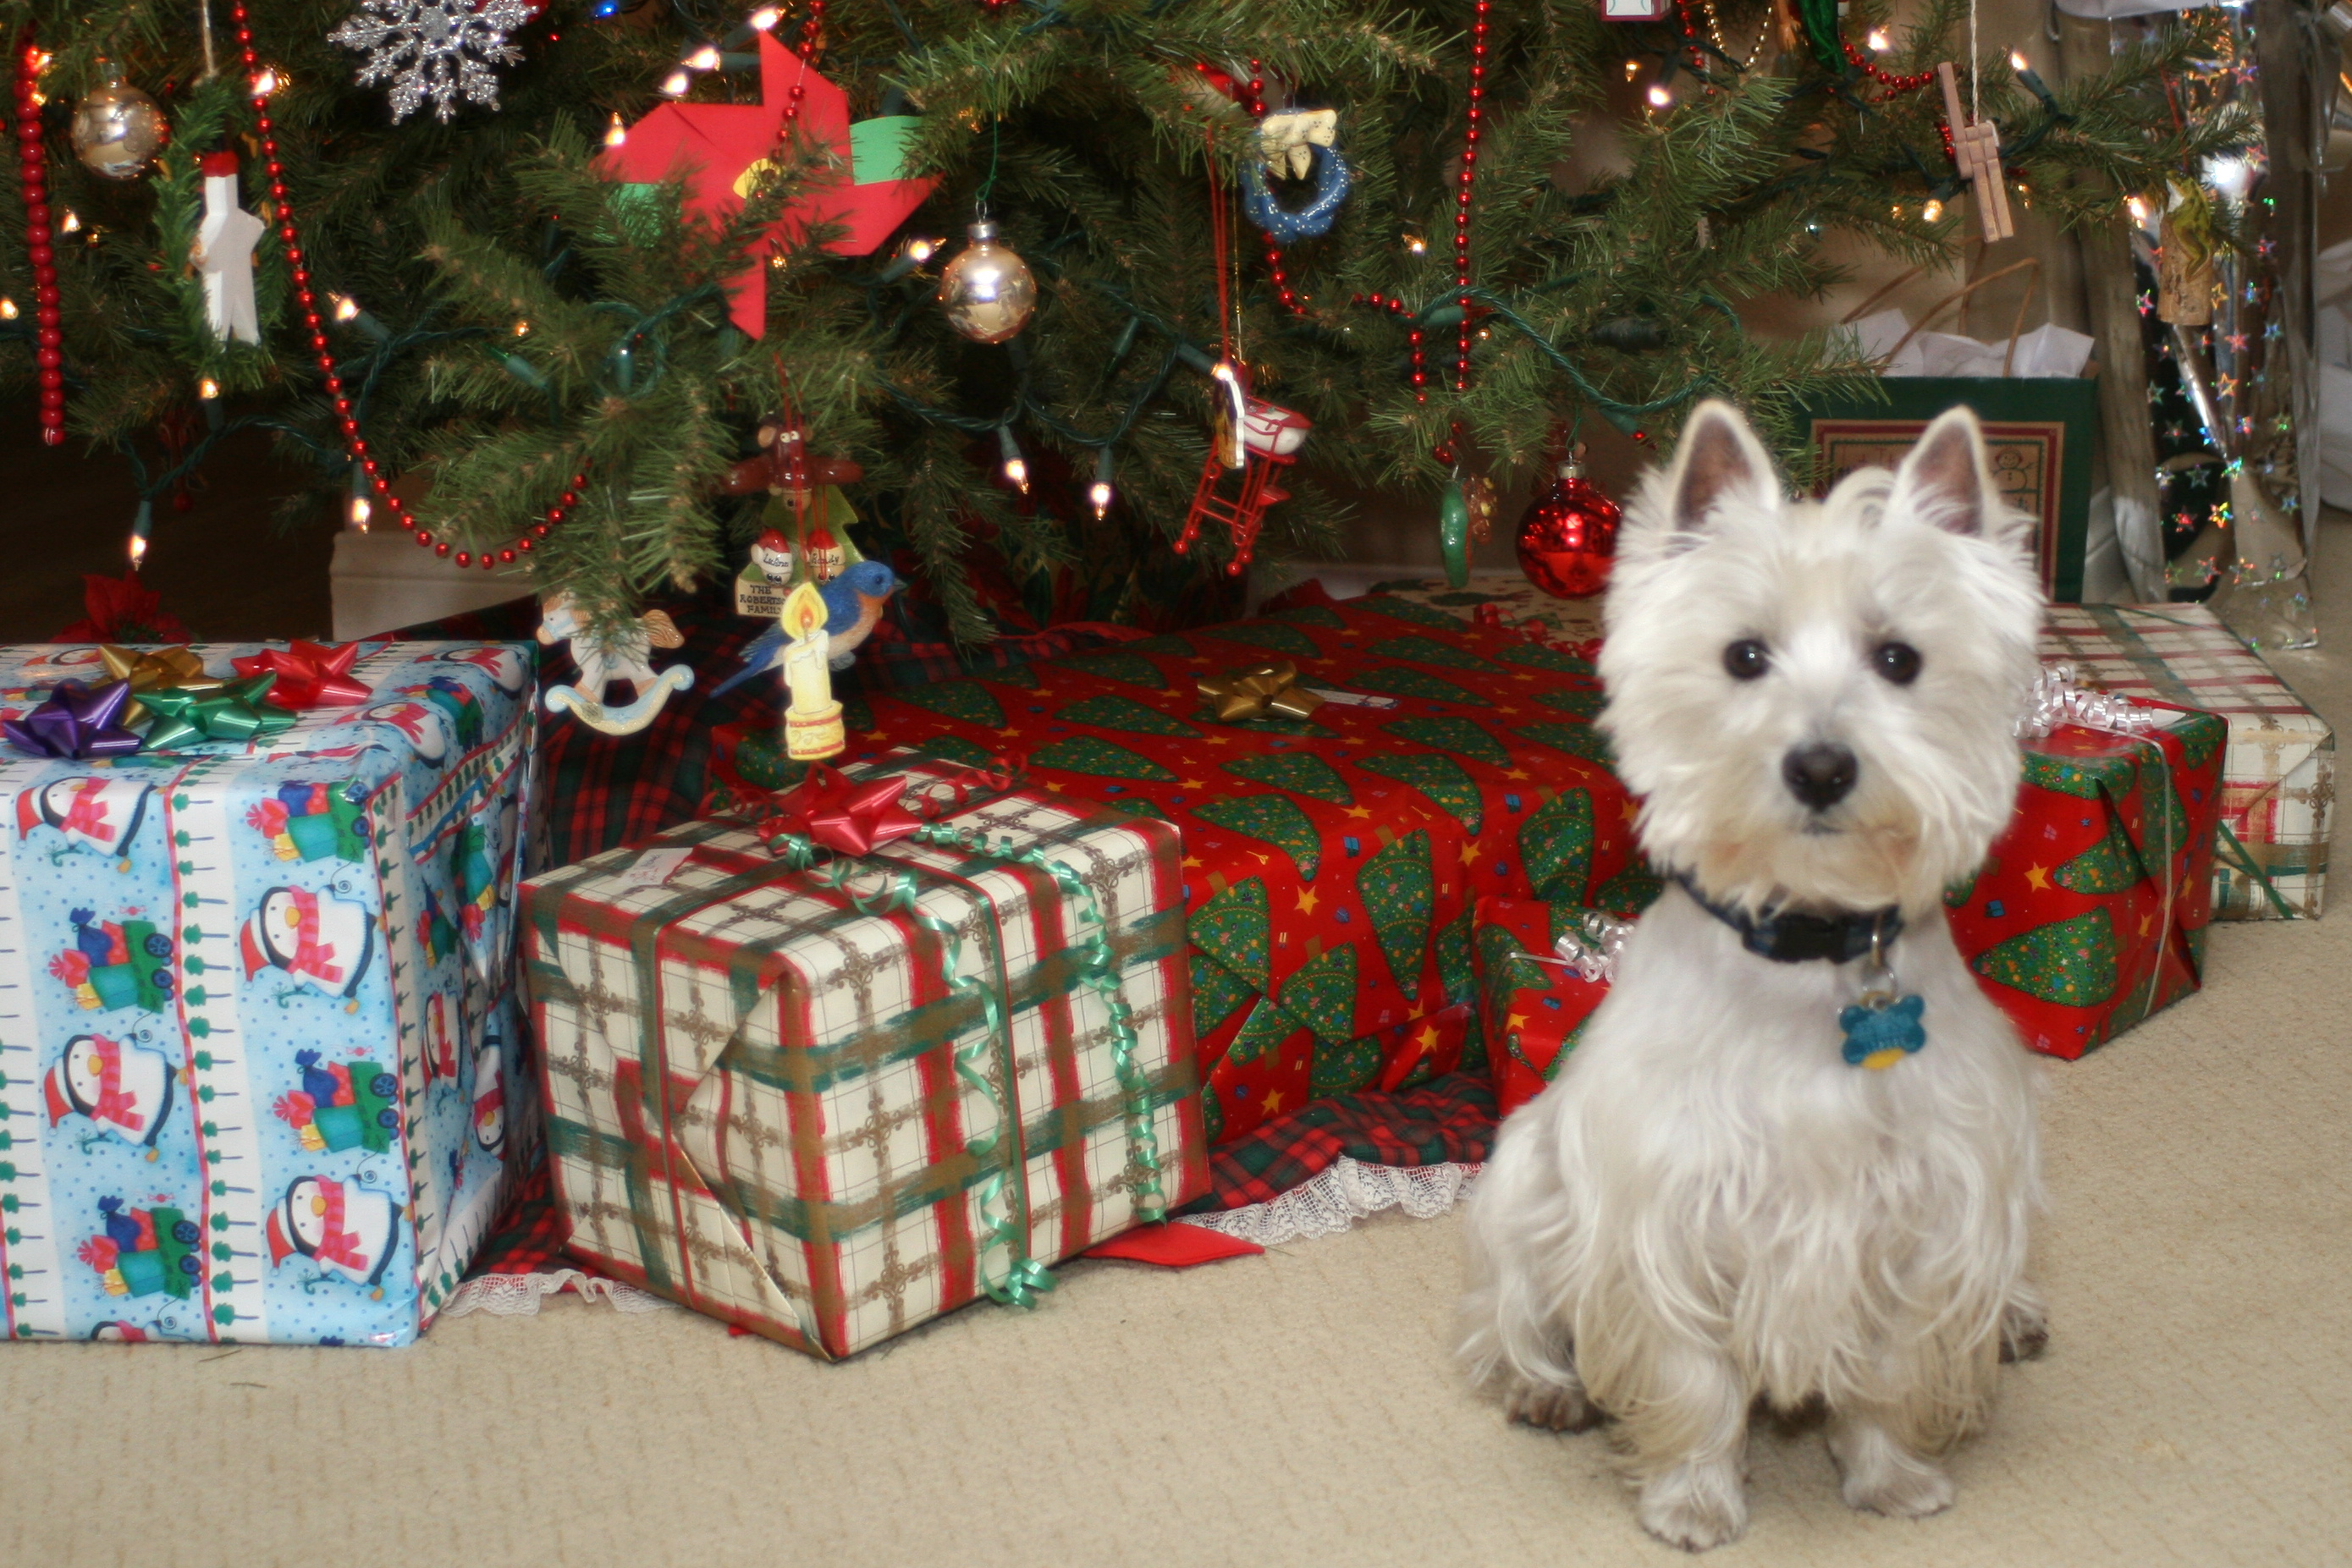 A live dog may or may not be the best gift idea according to the ASPCA.